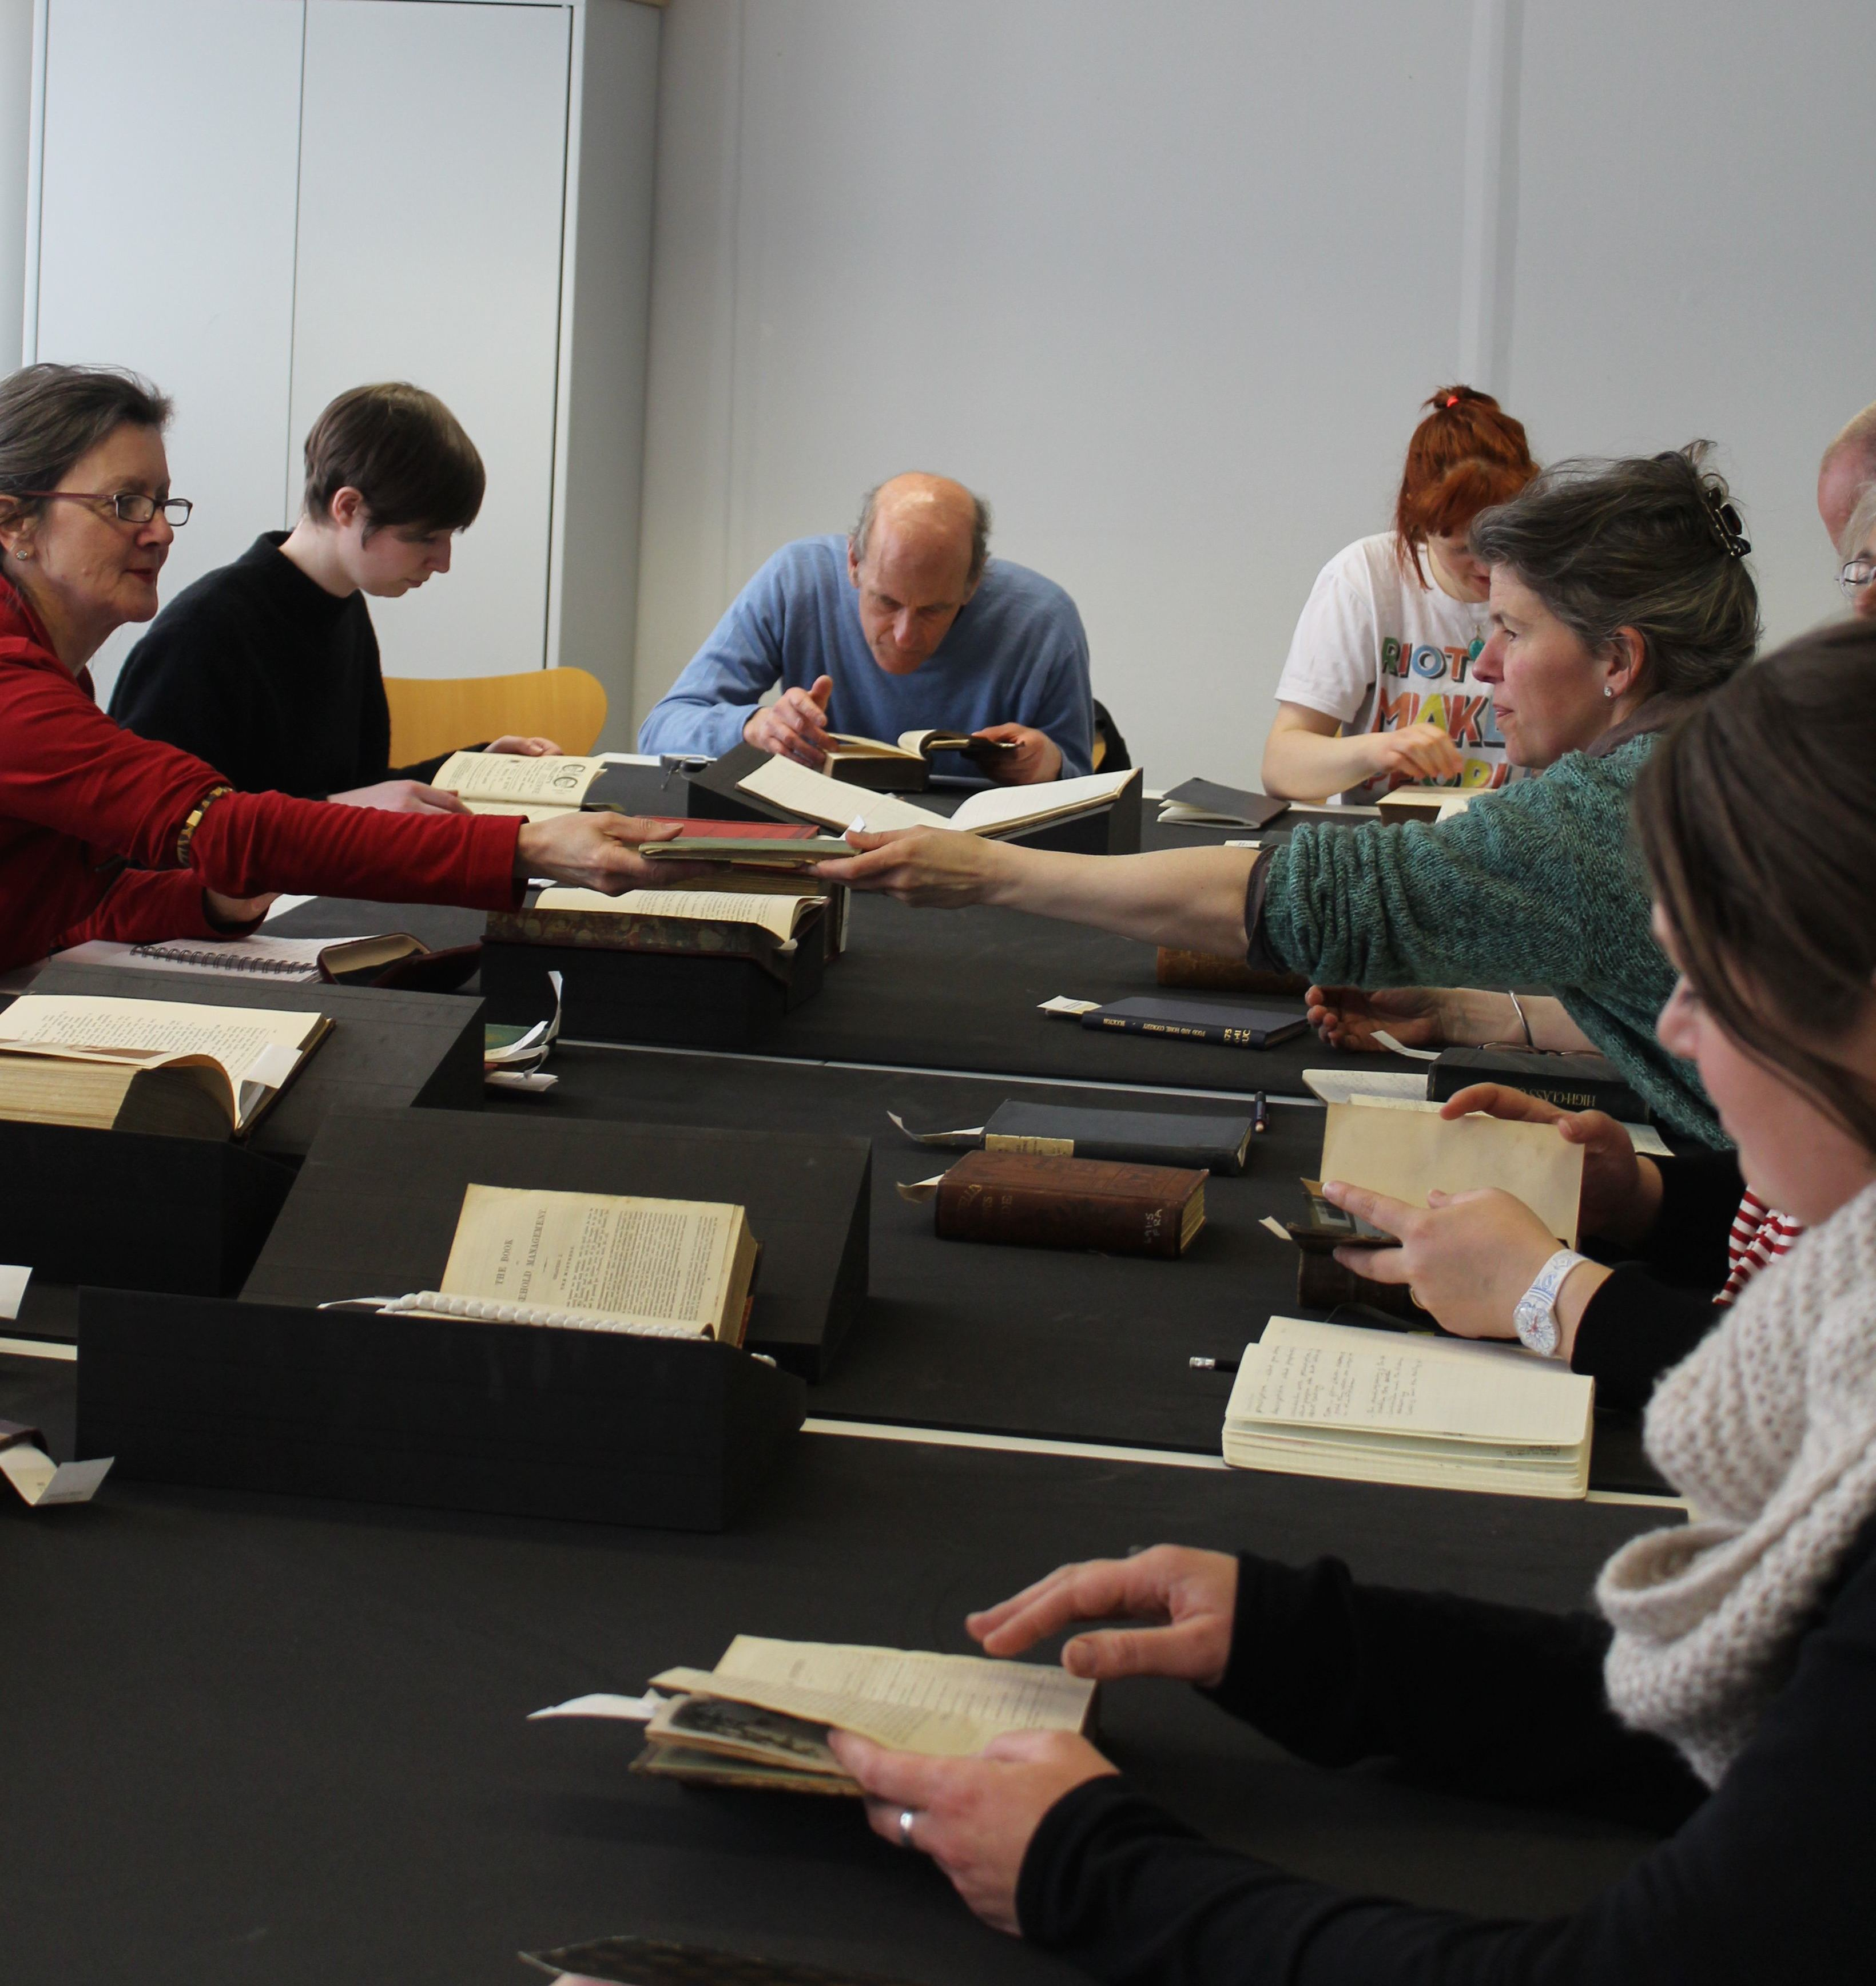 Participants engaging with a wide range of nineteenth-century cookbooks held at the Manchester Metropolitan University Special Collections. Photo Credit: FEAST online journal.